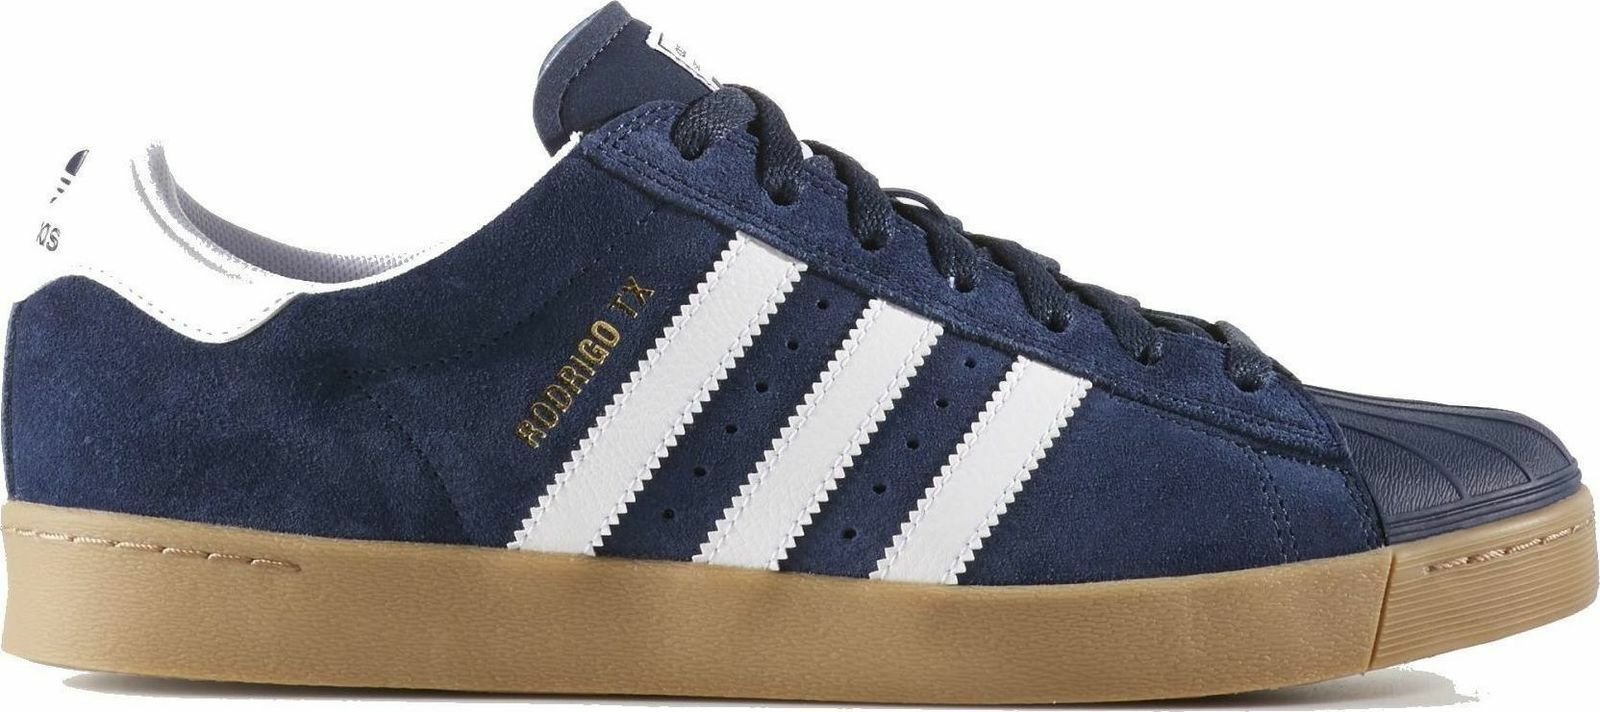 Adidas Originals Mens Superstar Vulc ADV  Navy Trainers UK 6.5